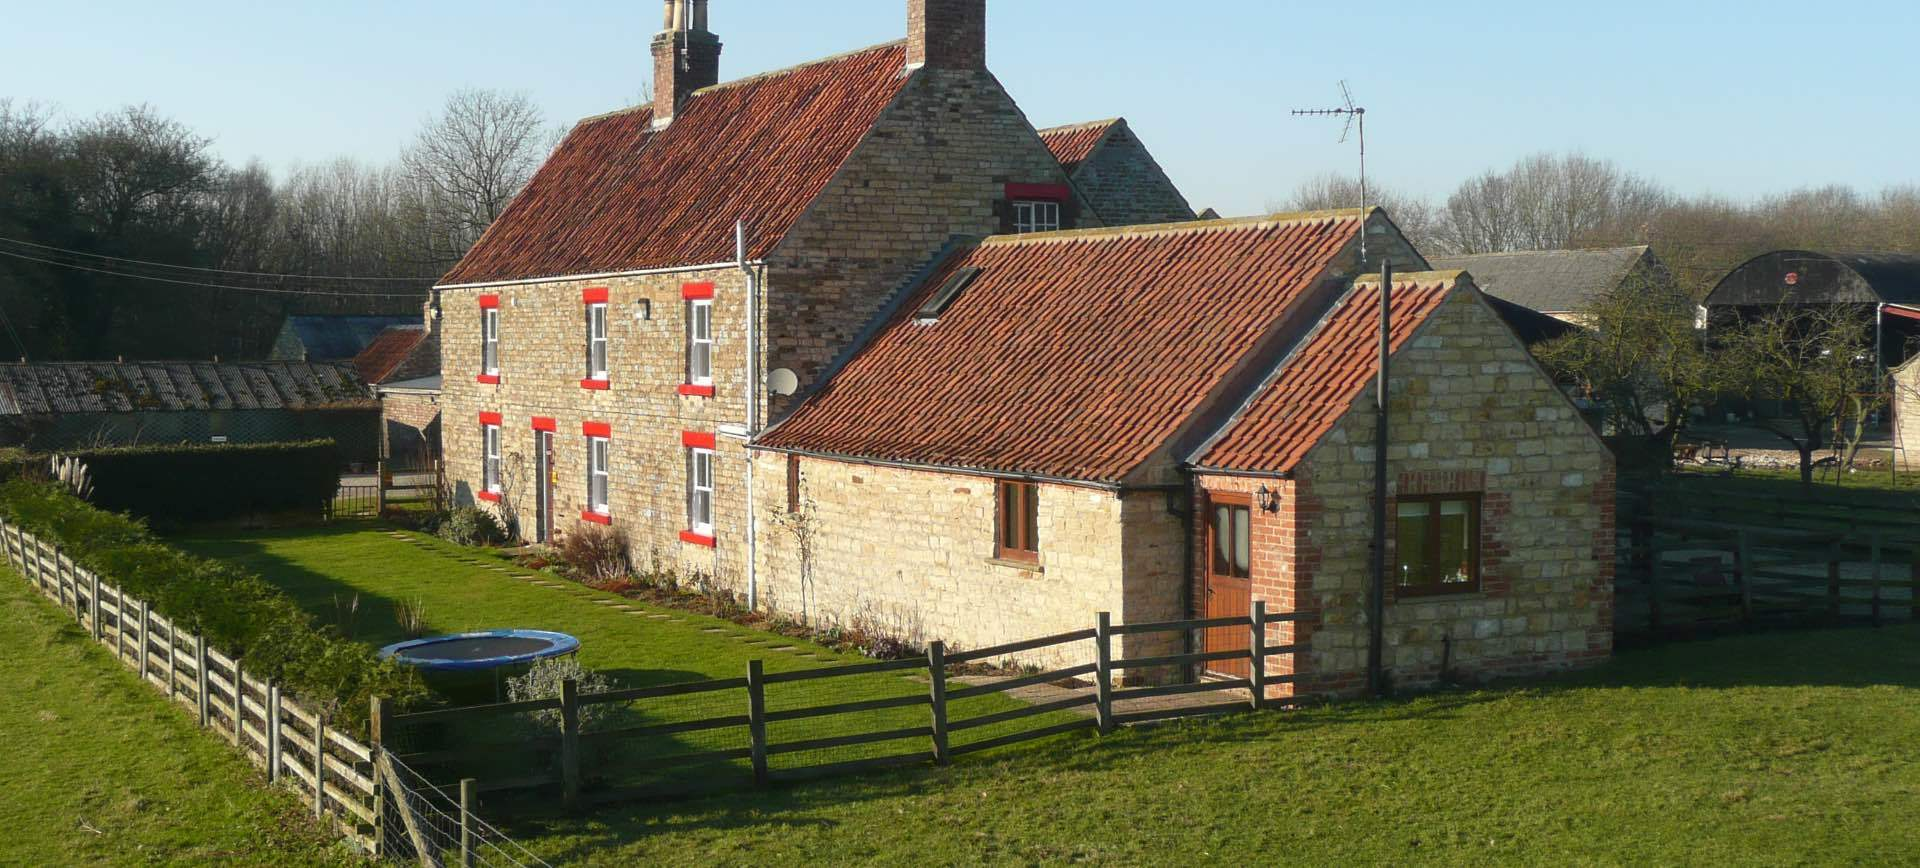 Woodhouse Farm B&B at Westow, near Malton